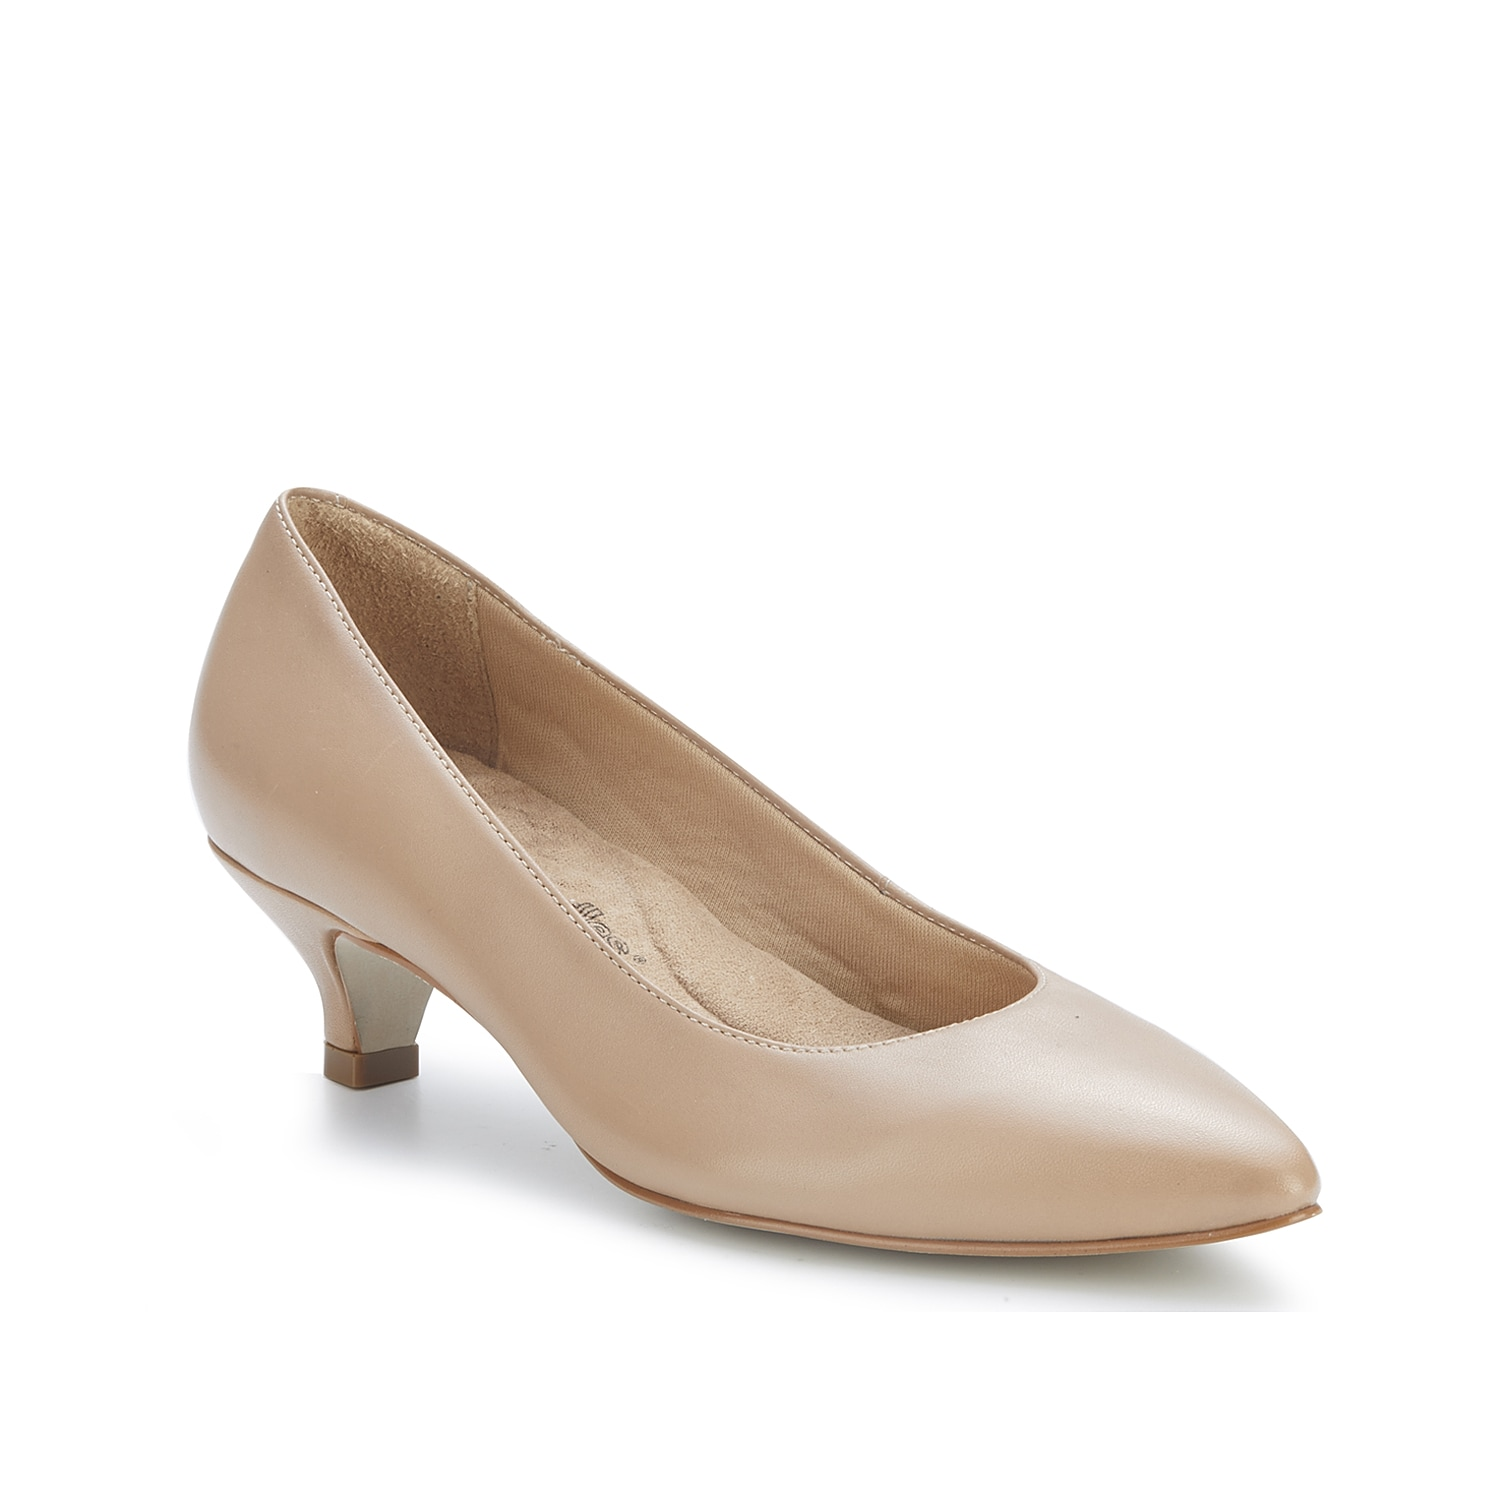 Flaunt classic style with the Holleen pump from Walking Cradles. With a kitten heel, pointed toe, and Tiny Pillows cushioned footbed, this leather pair will become a new favorite.